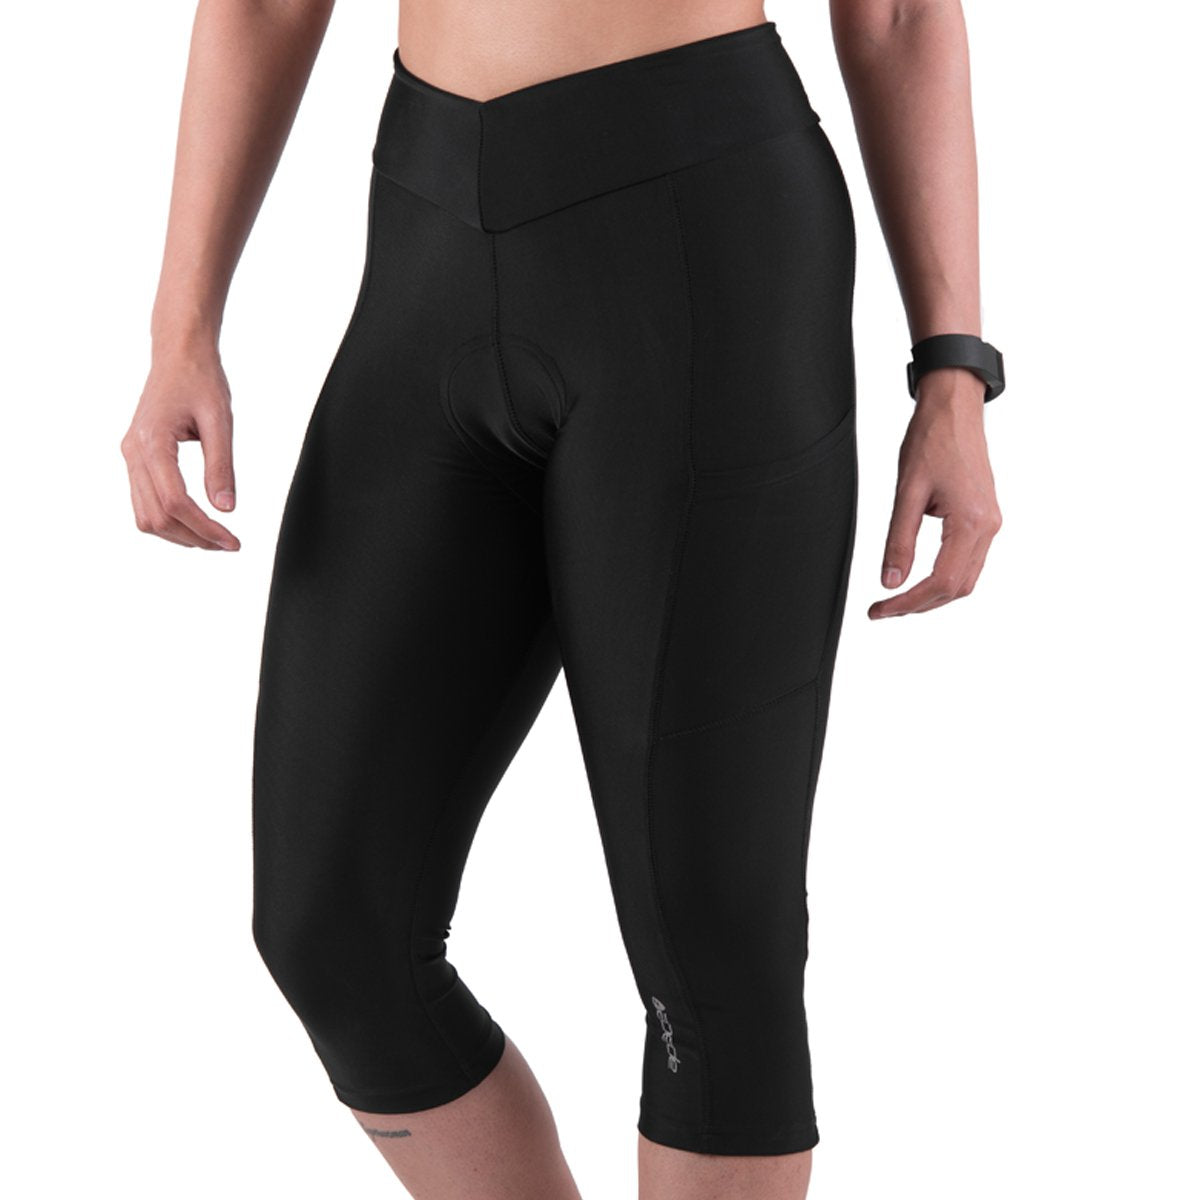 Apace 2017 Blade - Womens Cycling Capris